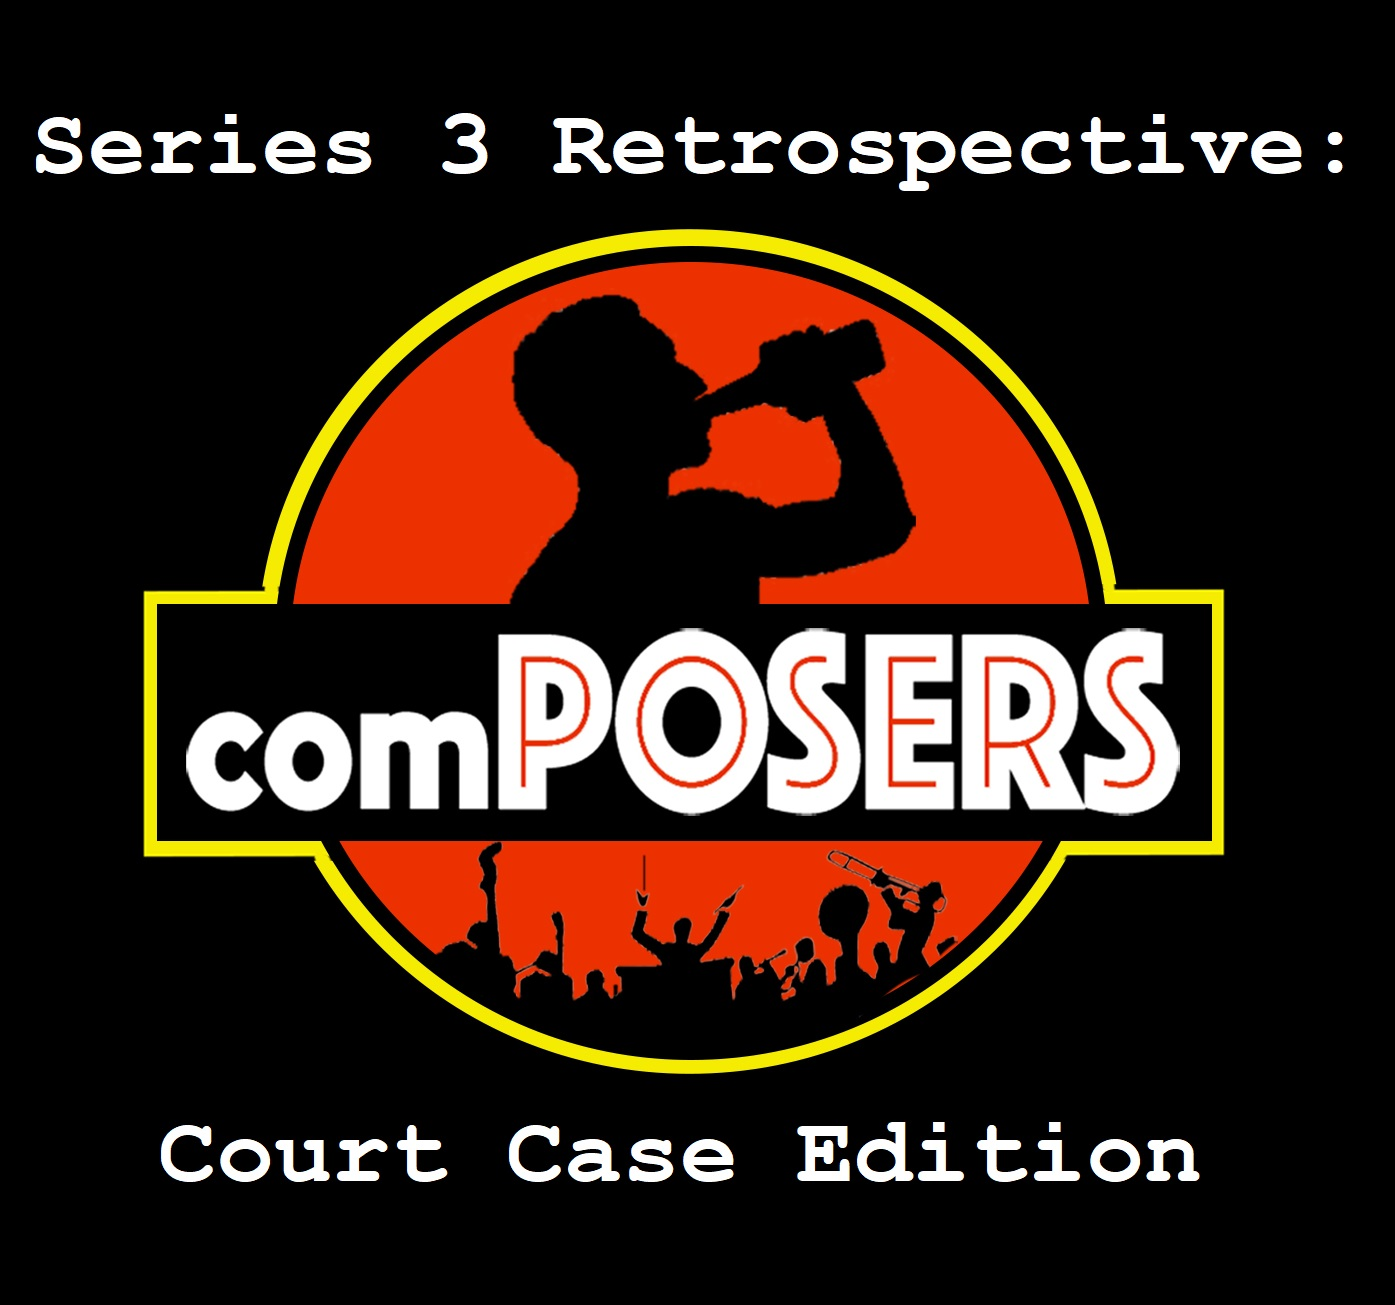 comPOSERS Series 3 Retrospective: Court Case Edition